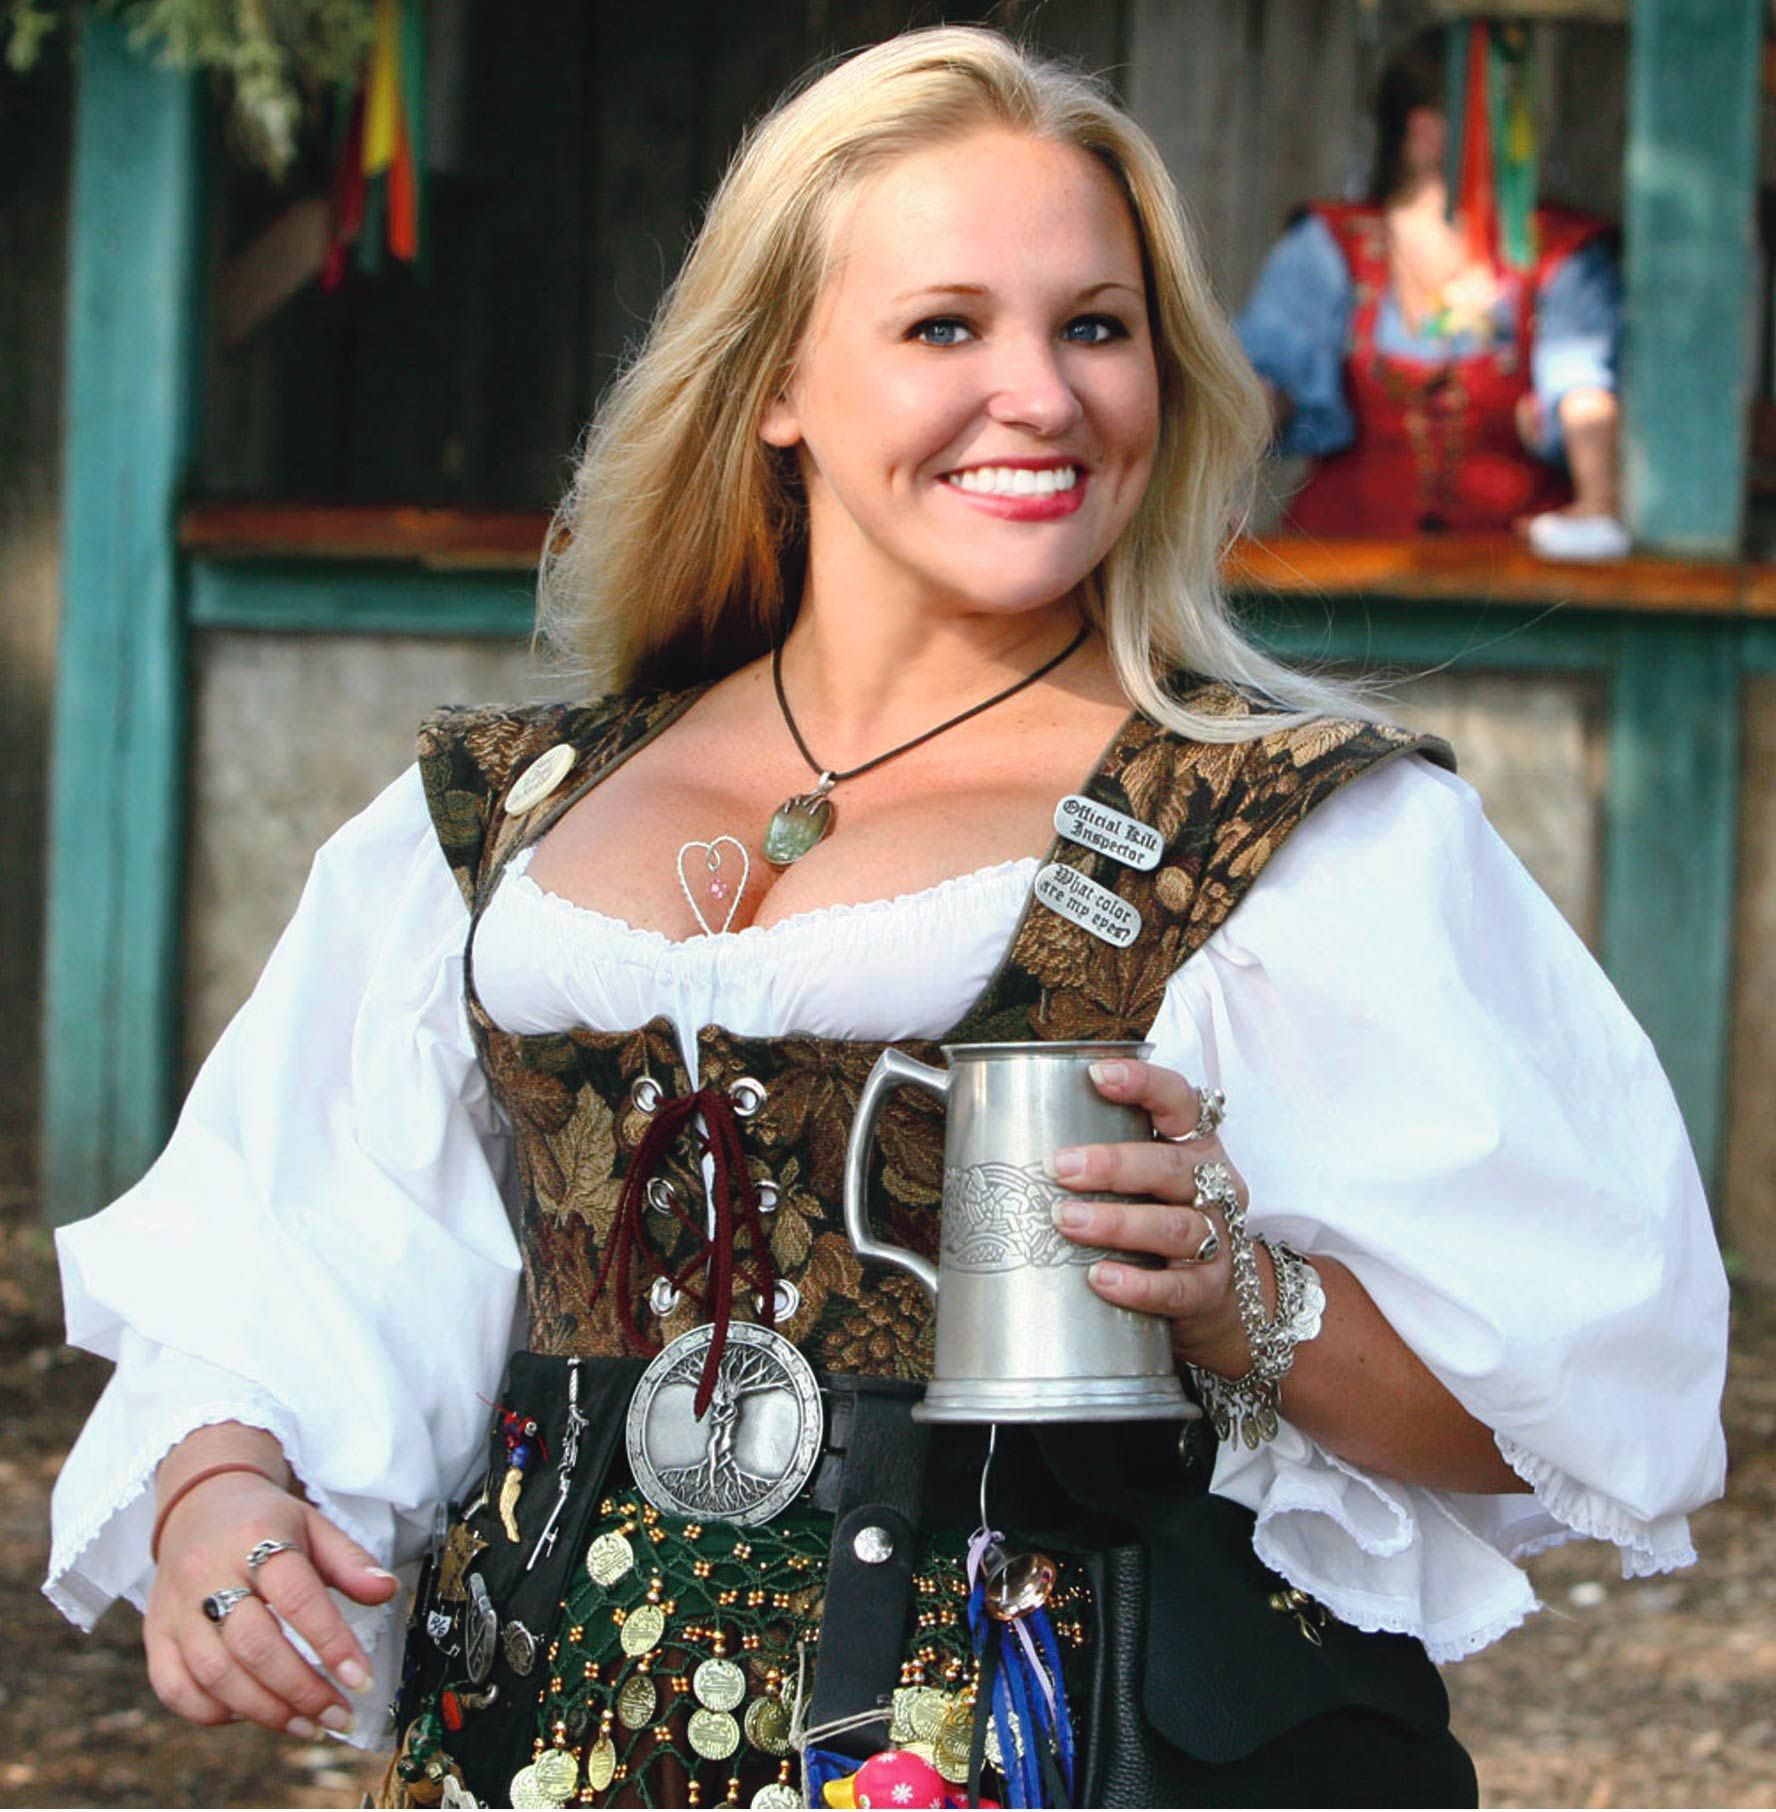 Beer Wench at the Festival Renaissance Festival Costumes, Renaissance Fair,  Renaissance Fashion, Beer